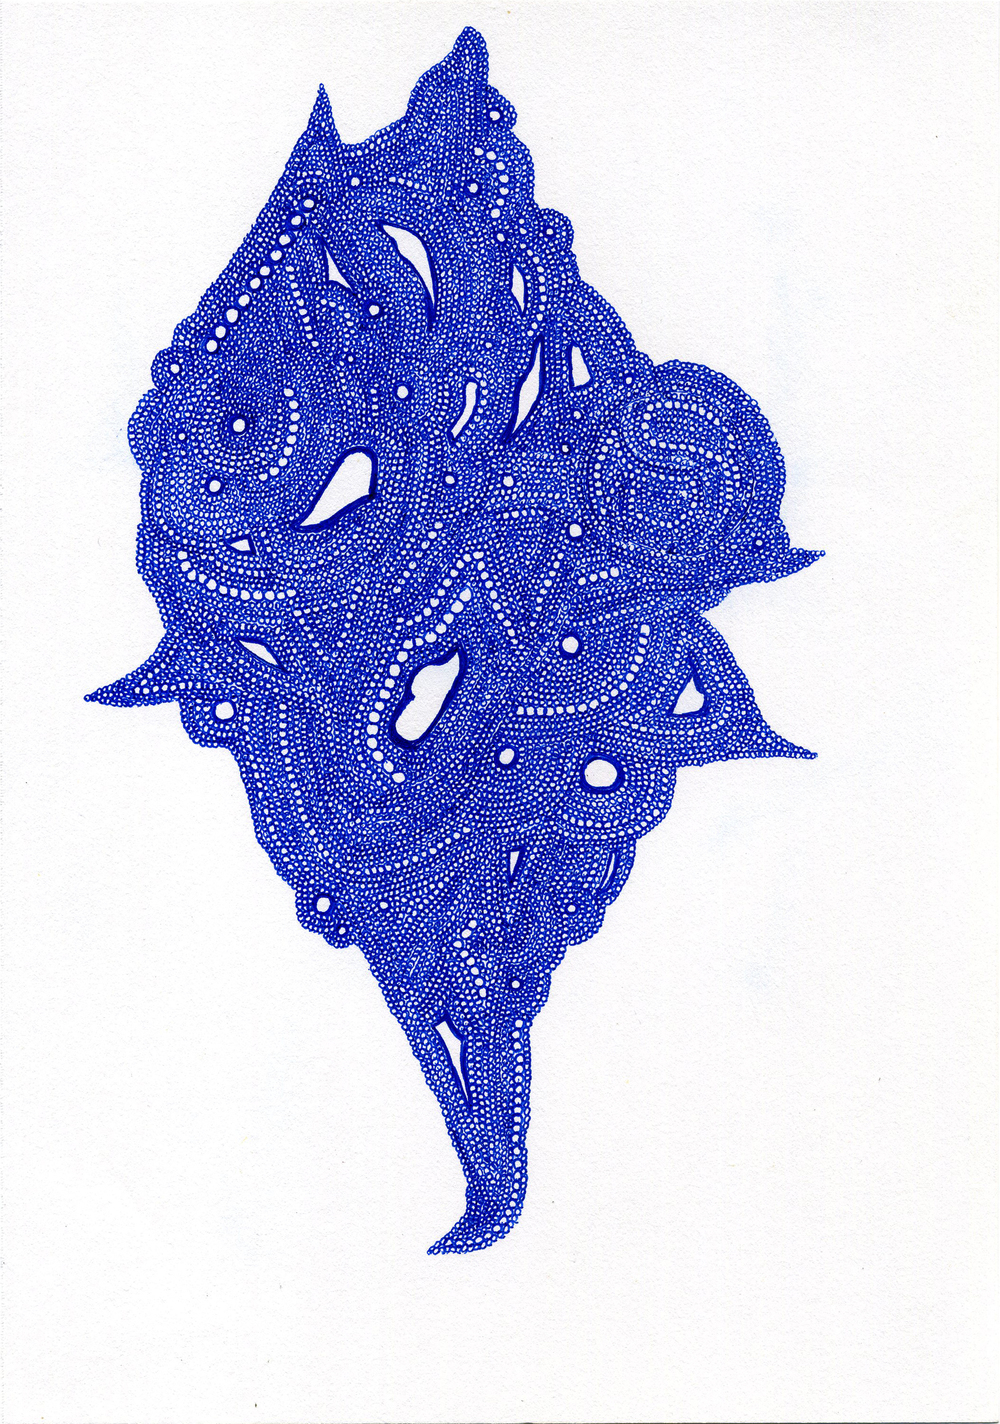 Lauren Sampson    Untitled  , 2011 Ink/paper 10 x 7 inches  /  25.4 x 17.8 cm  /  LaS 28